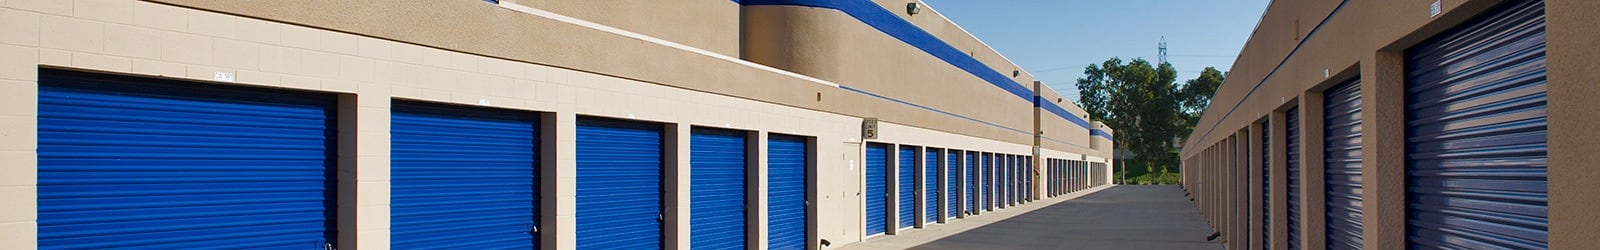 Photos of the facility at Mira Mesa Self Storage